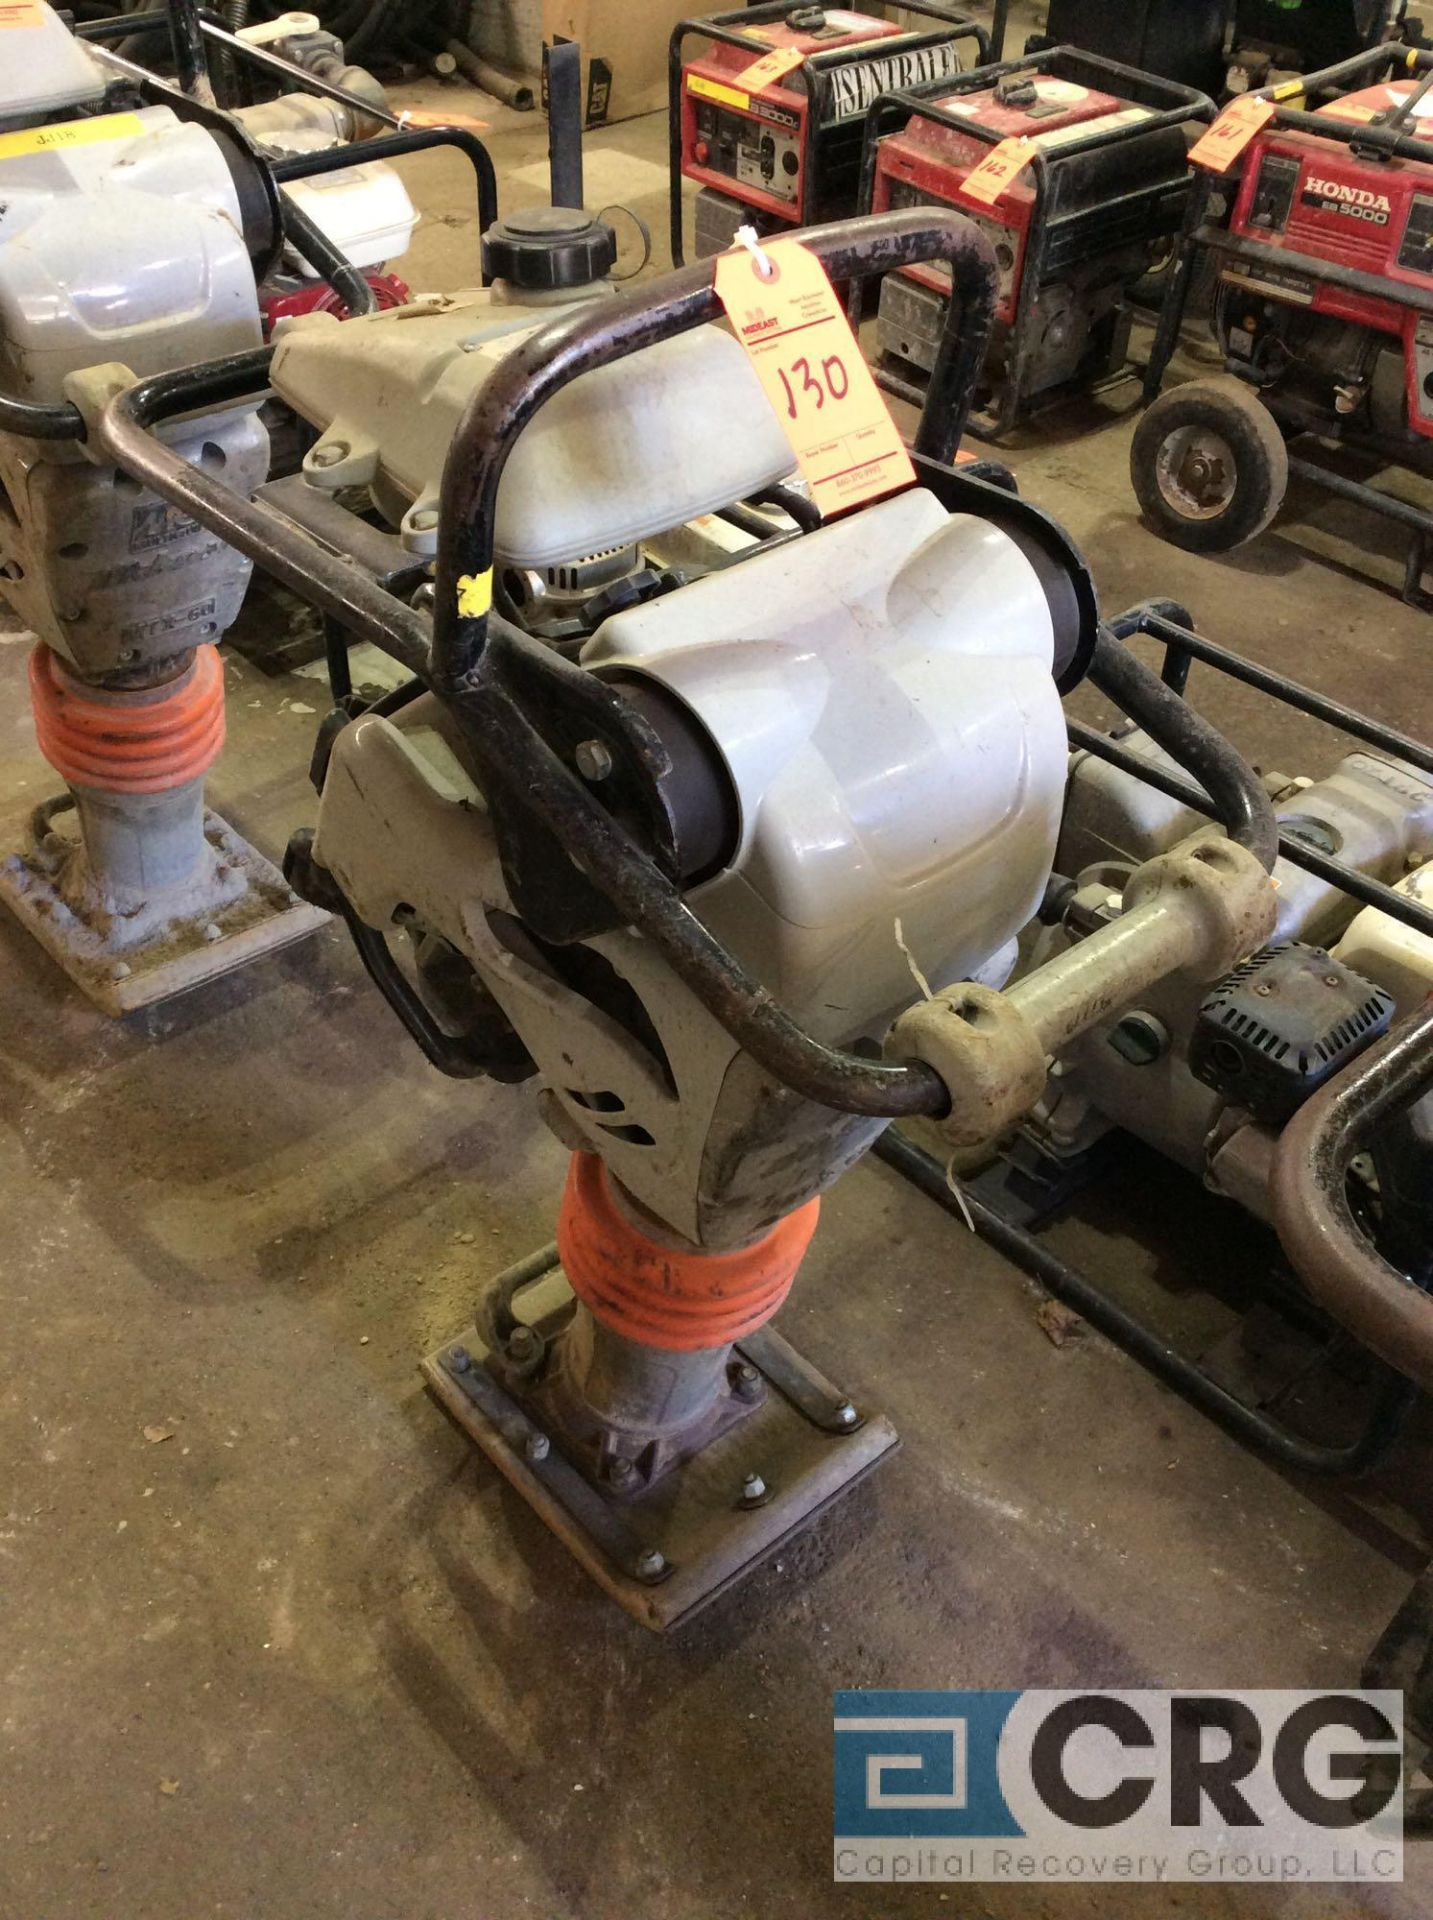 Lot 130 - MultiQuip MTX60 jumping jack tamper with Honda GX100 motor, 184 hours